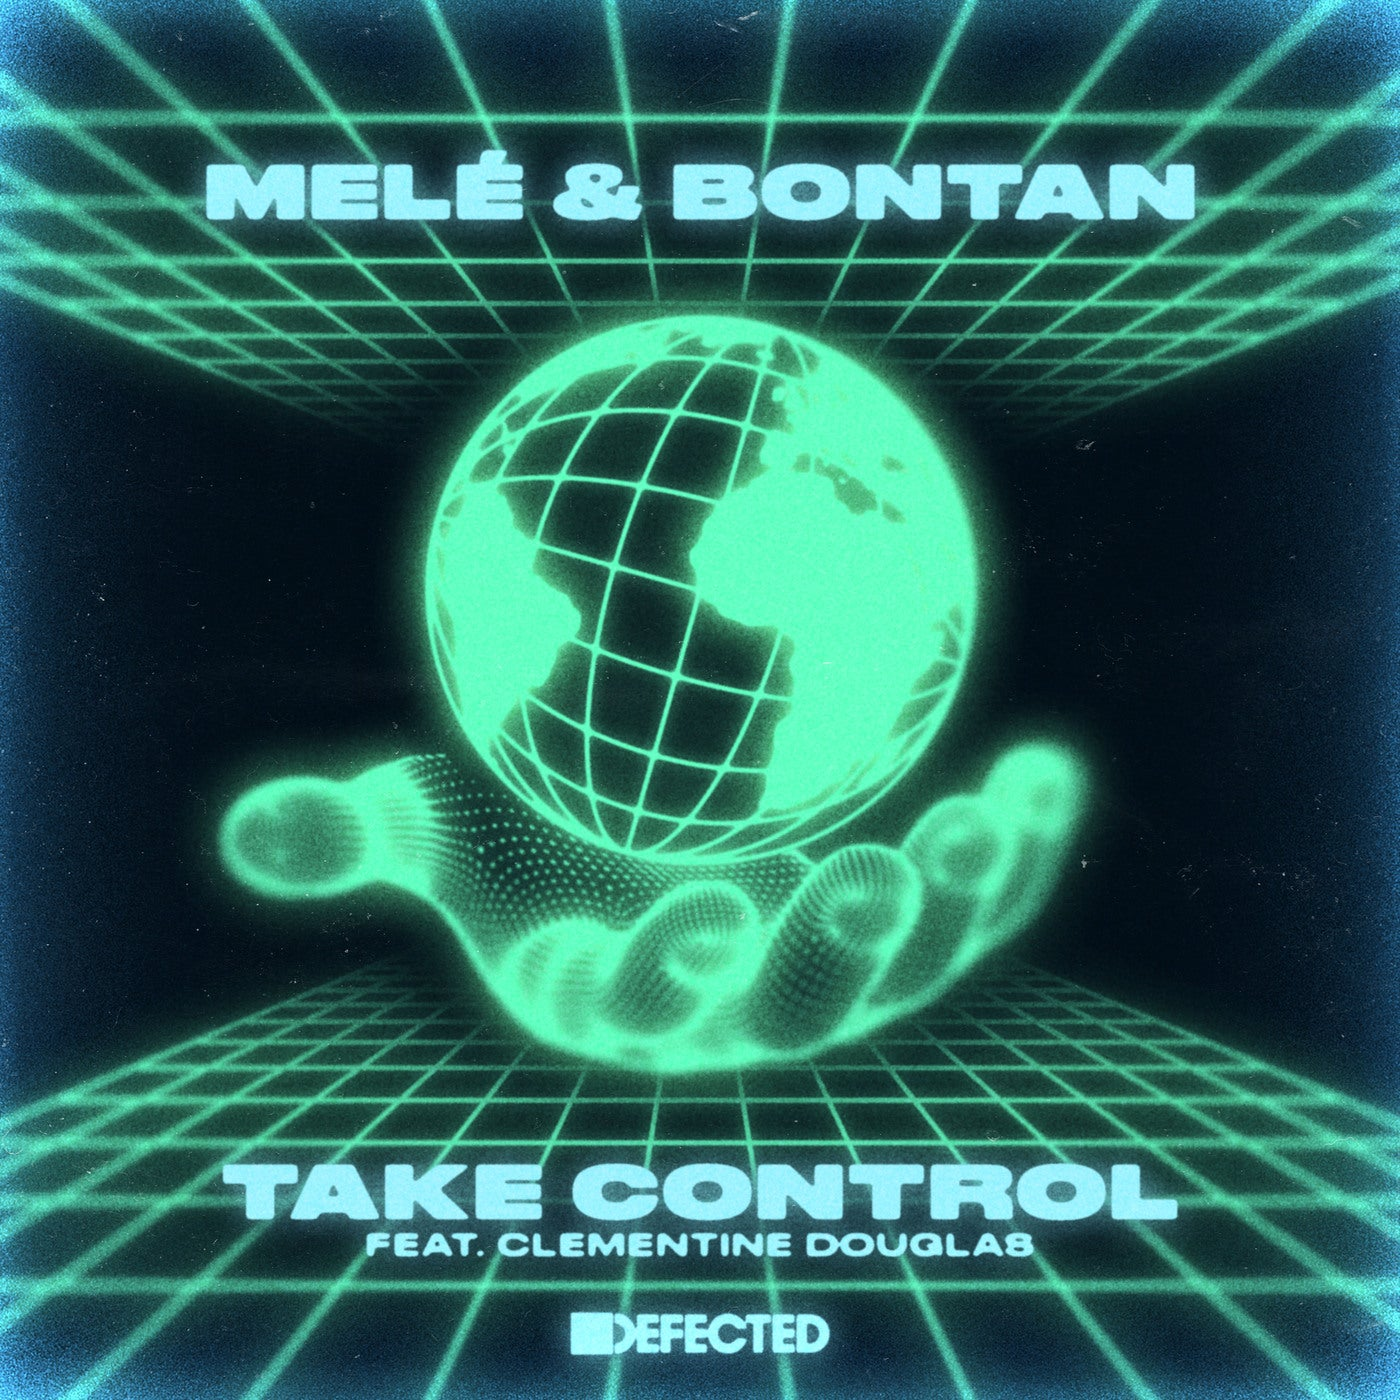 Take Control feat. Clementine Douglas (Extended Mix)